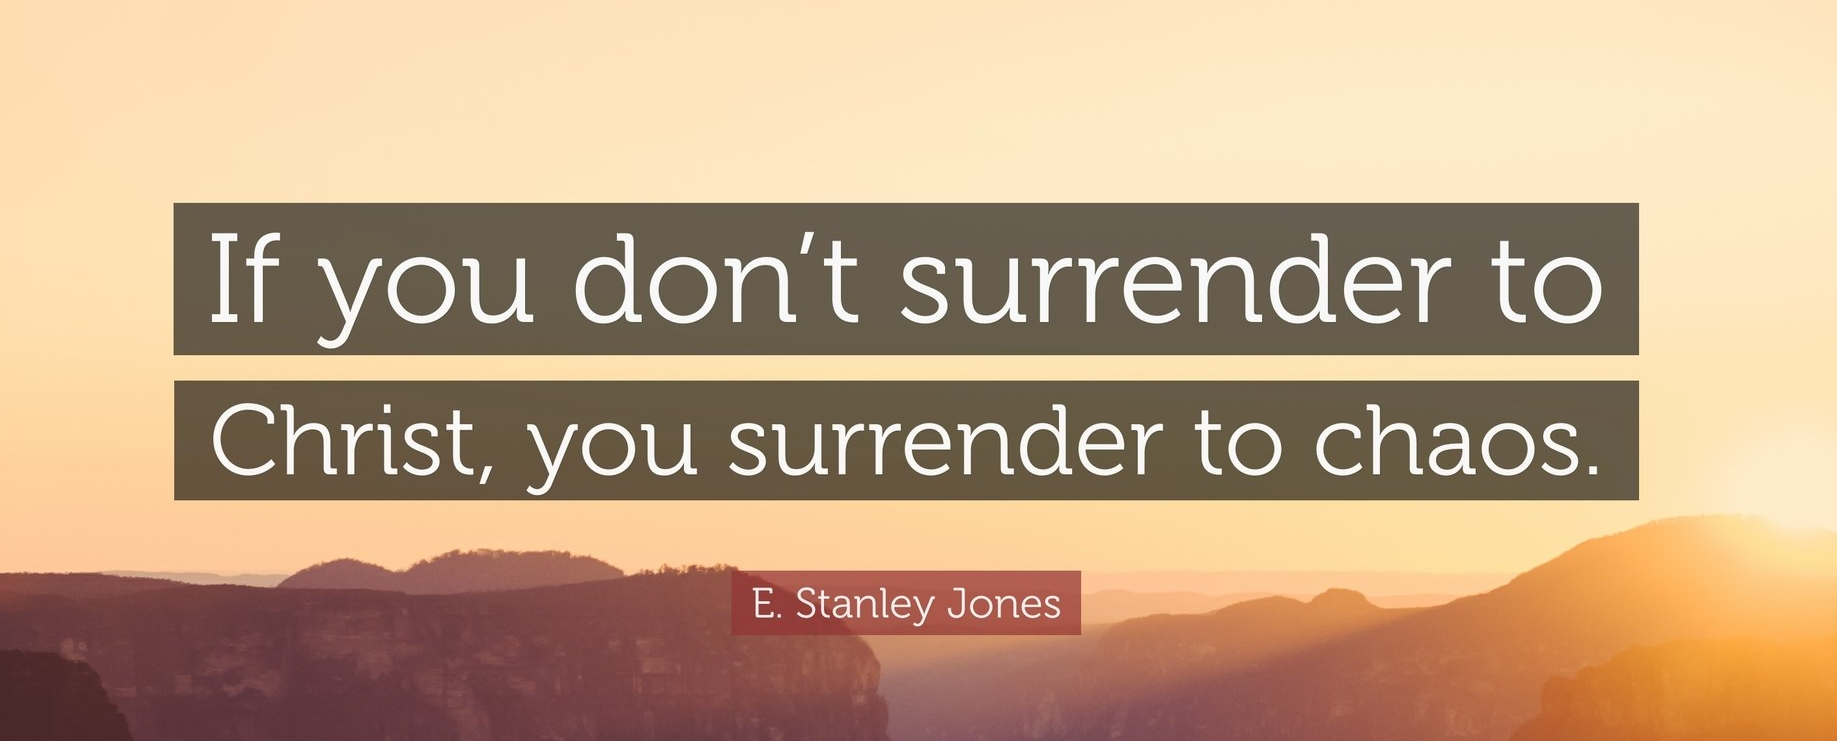 972246-E-Stanley-Jones-Quote-If-you-don-t-surrender-to-Christ-you.jpg